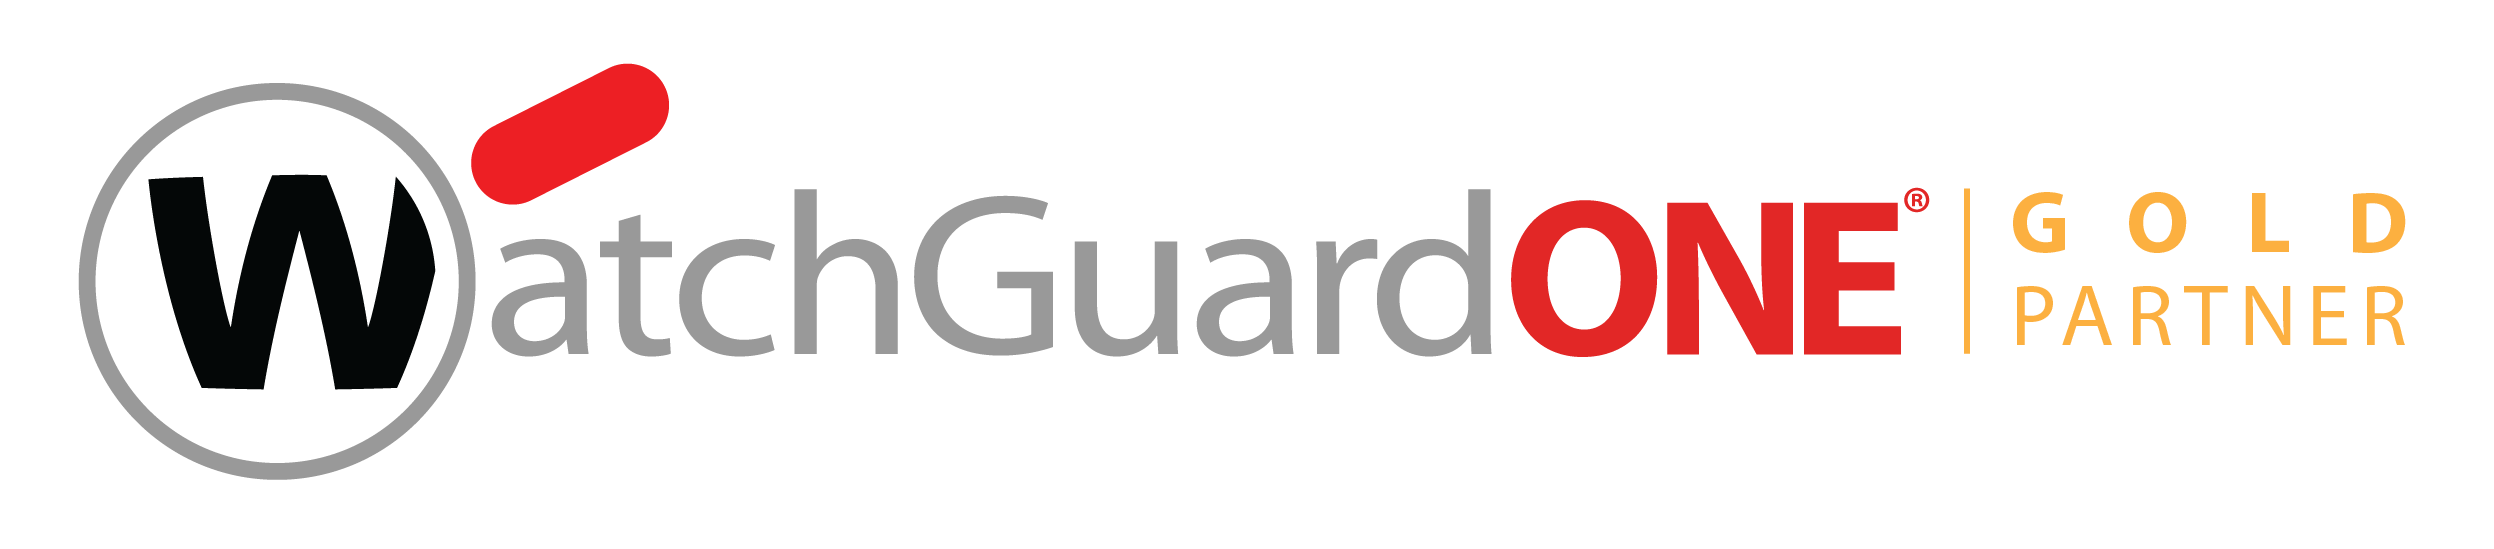 Watchguard Gold Partner